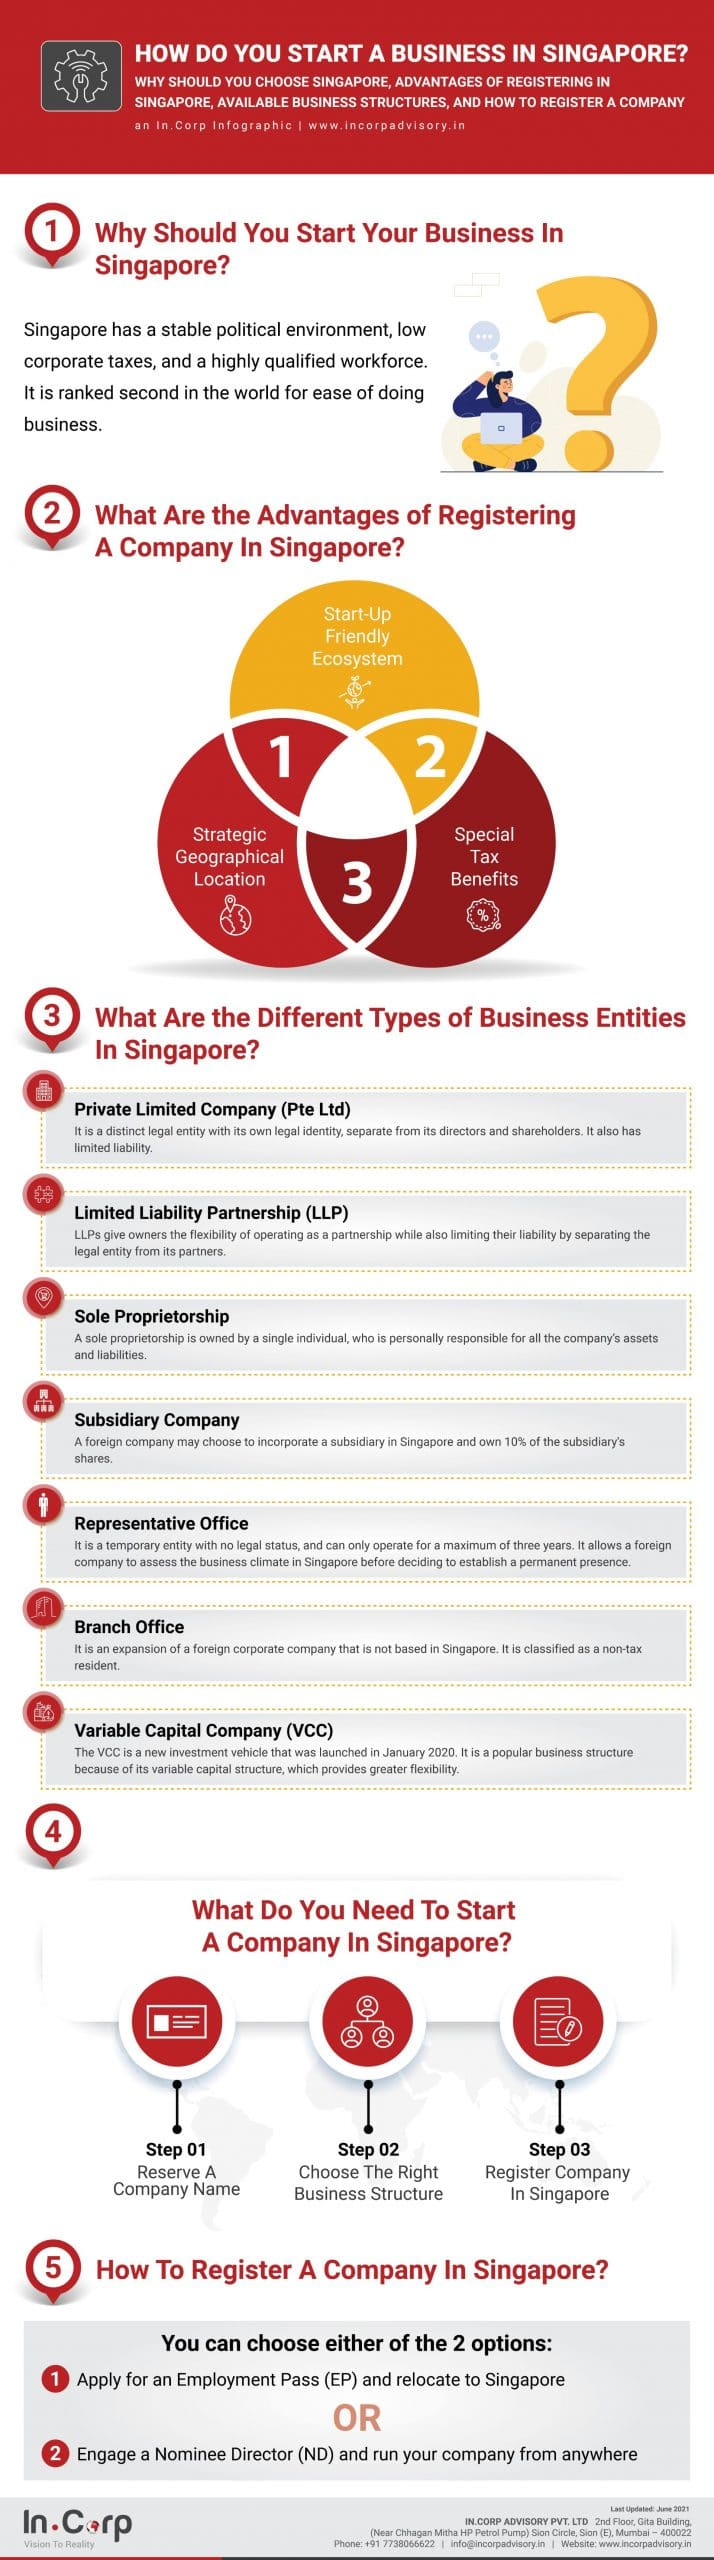 How To Start Company In Singapore?